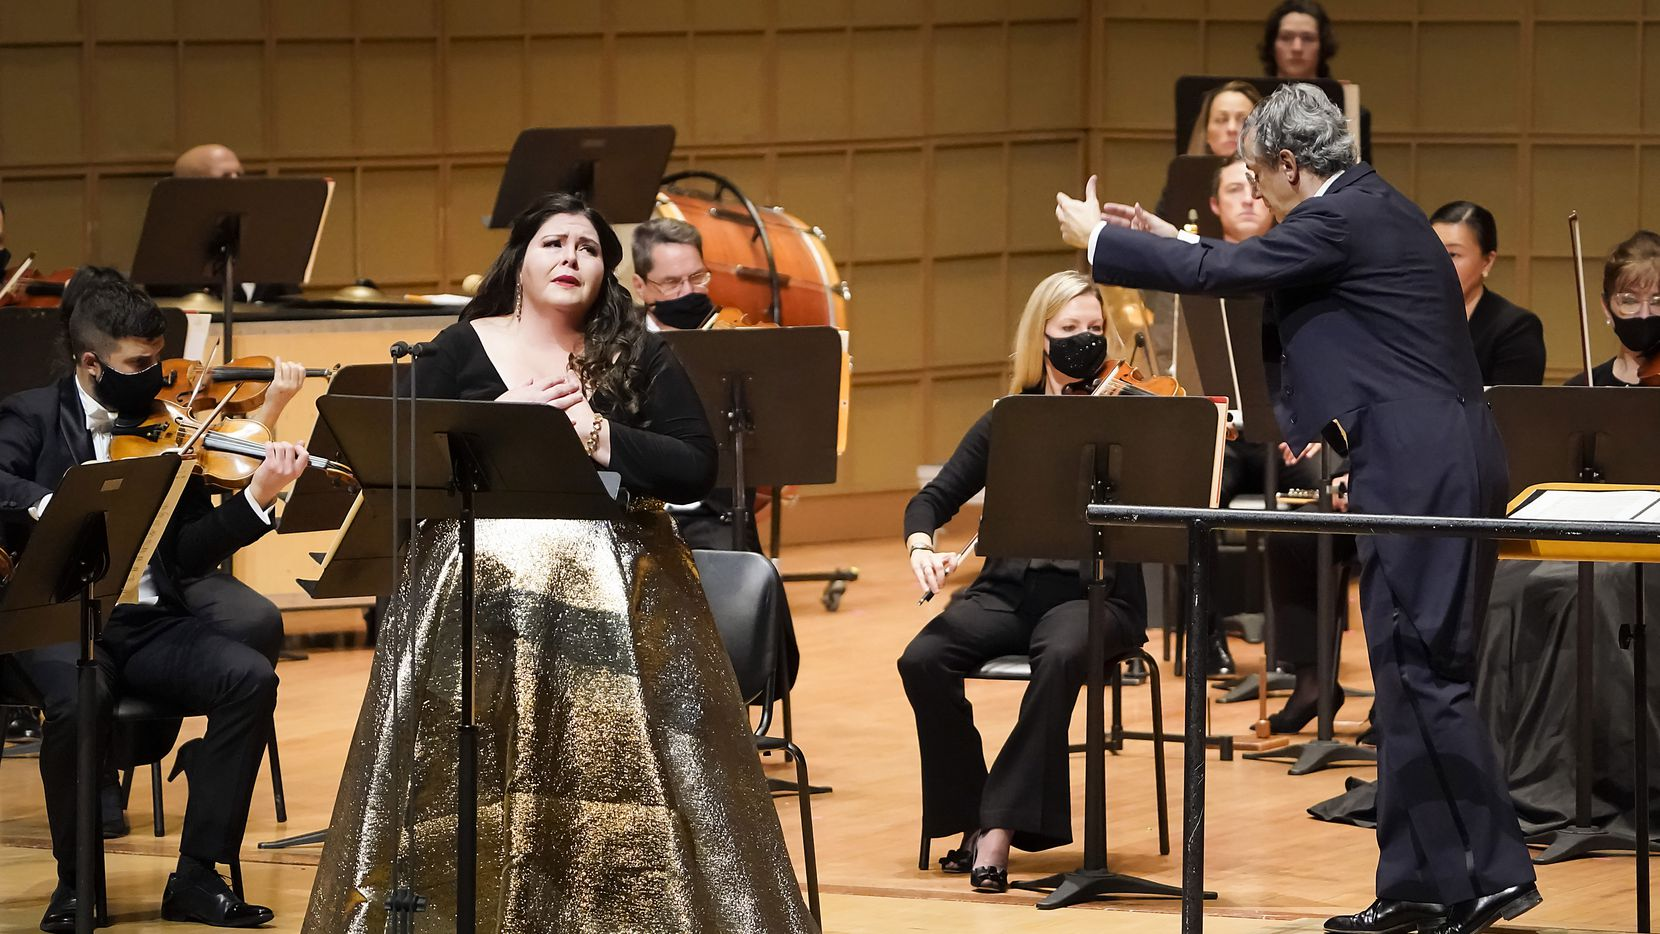 Soprano Angela Meade performs as Fabio Luisi conducts the Dallas Symphony Orchestra in concert at the Meyerson Symphony Center on Thursday, Oct. 29, 2020, in Dallas.